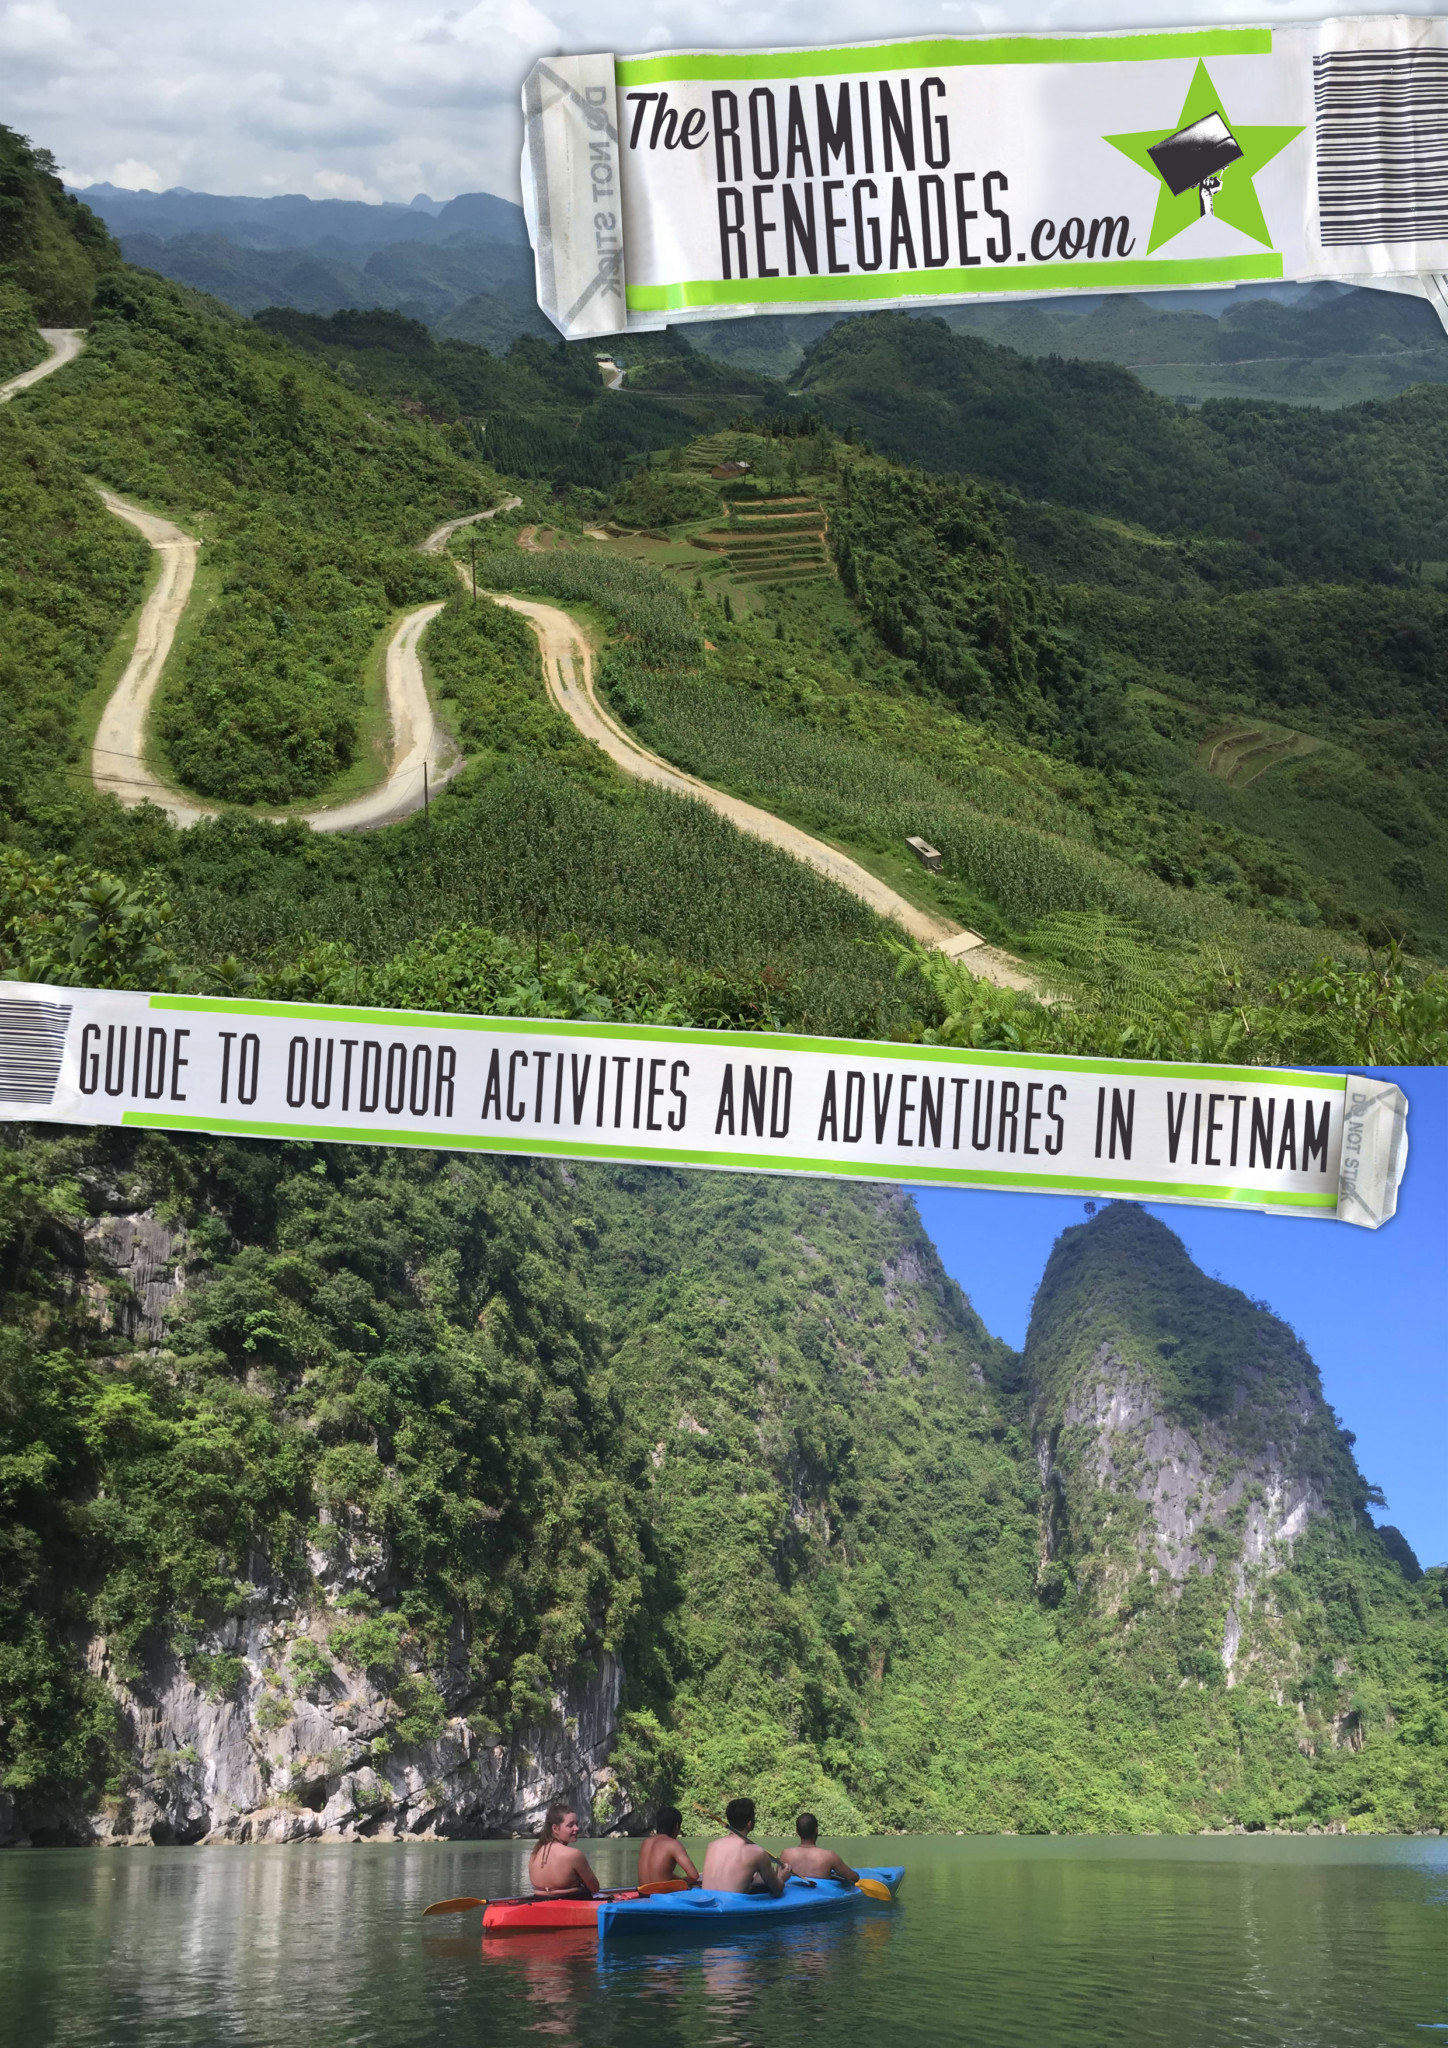 Canyoning in Da Lat, Snorkeling/Diving in Nha Trang, Motorbiking Song Tra Mountain in Da Nang, Exploring Caves in Phong Nha-Ke Bang, Trang An Grottoes and Hang Mua Stairs in Ninh Binh, Kayaking in Ha Long Bay, Ha Giang Motorbike Loop, Trekking in Sapa, Vietnam, adventure, explore, south east asia, GUEST POST: 26 Year old's Guide to Outdoor Activities and Adventures in Vietnam